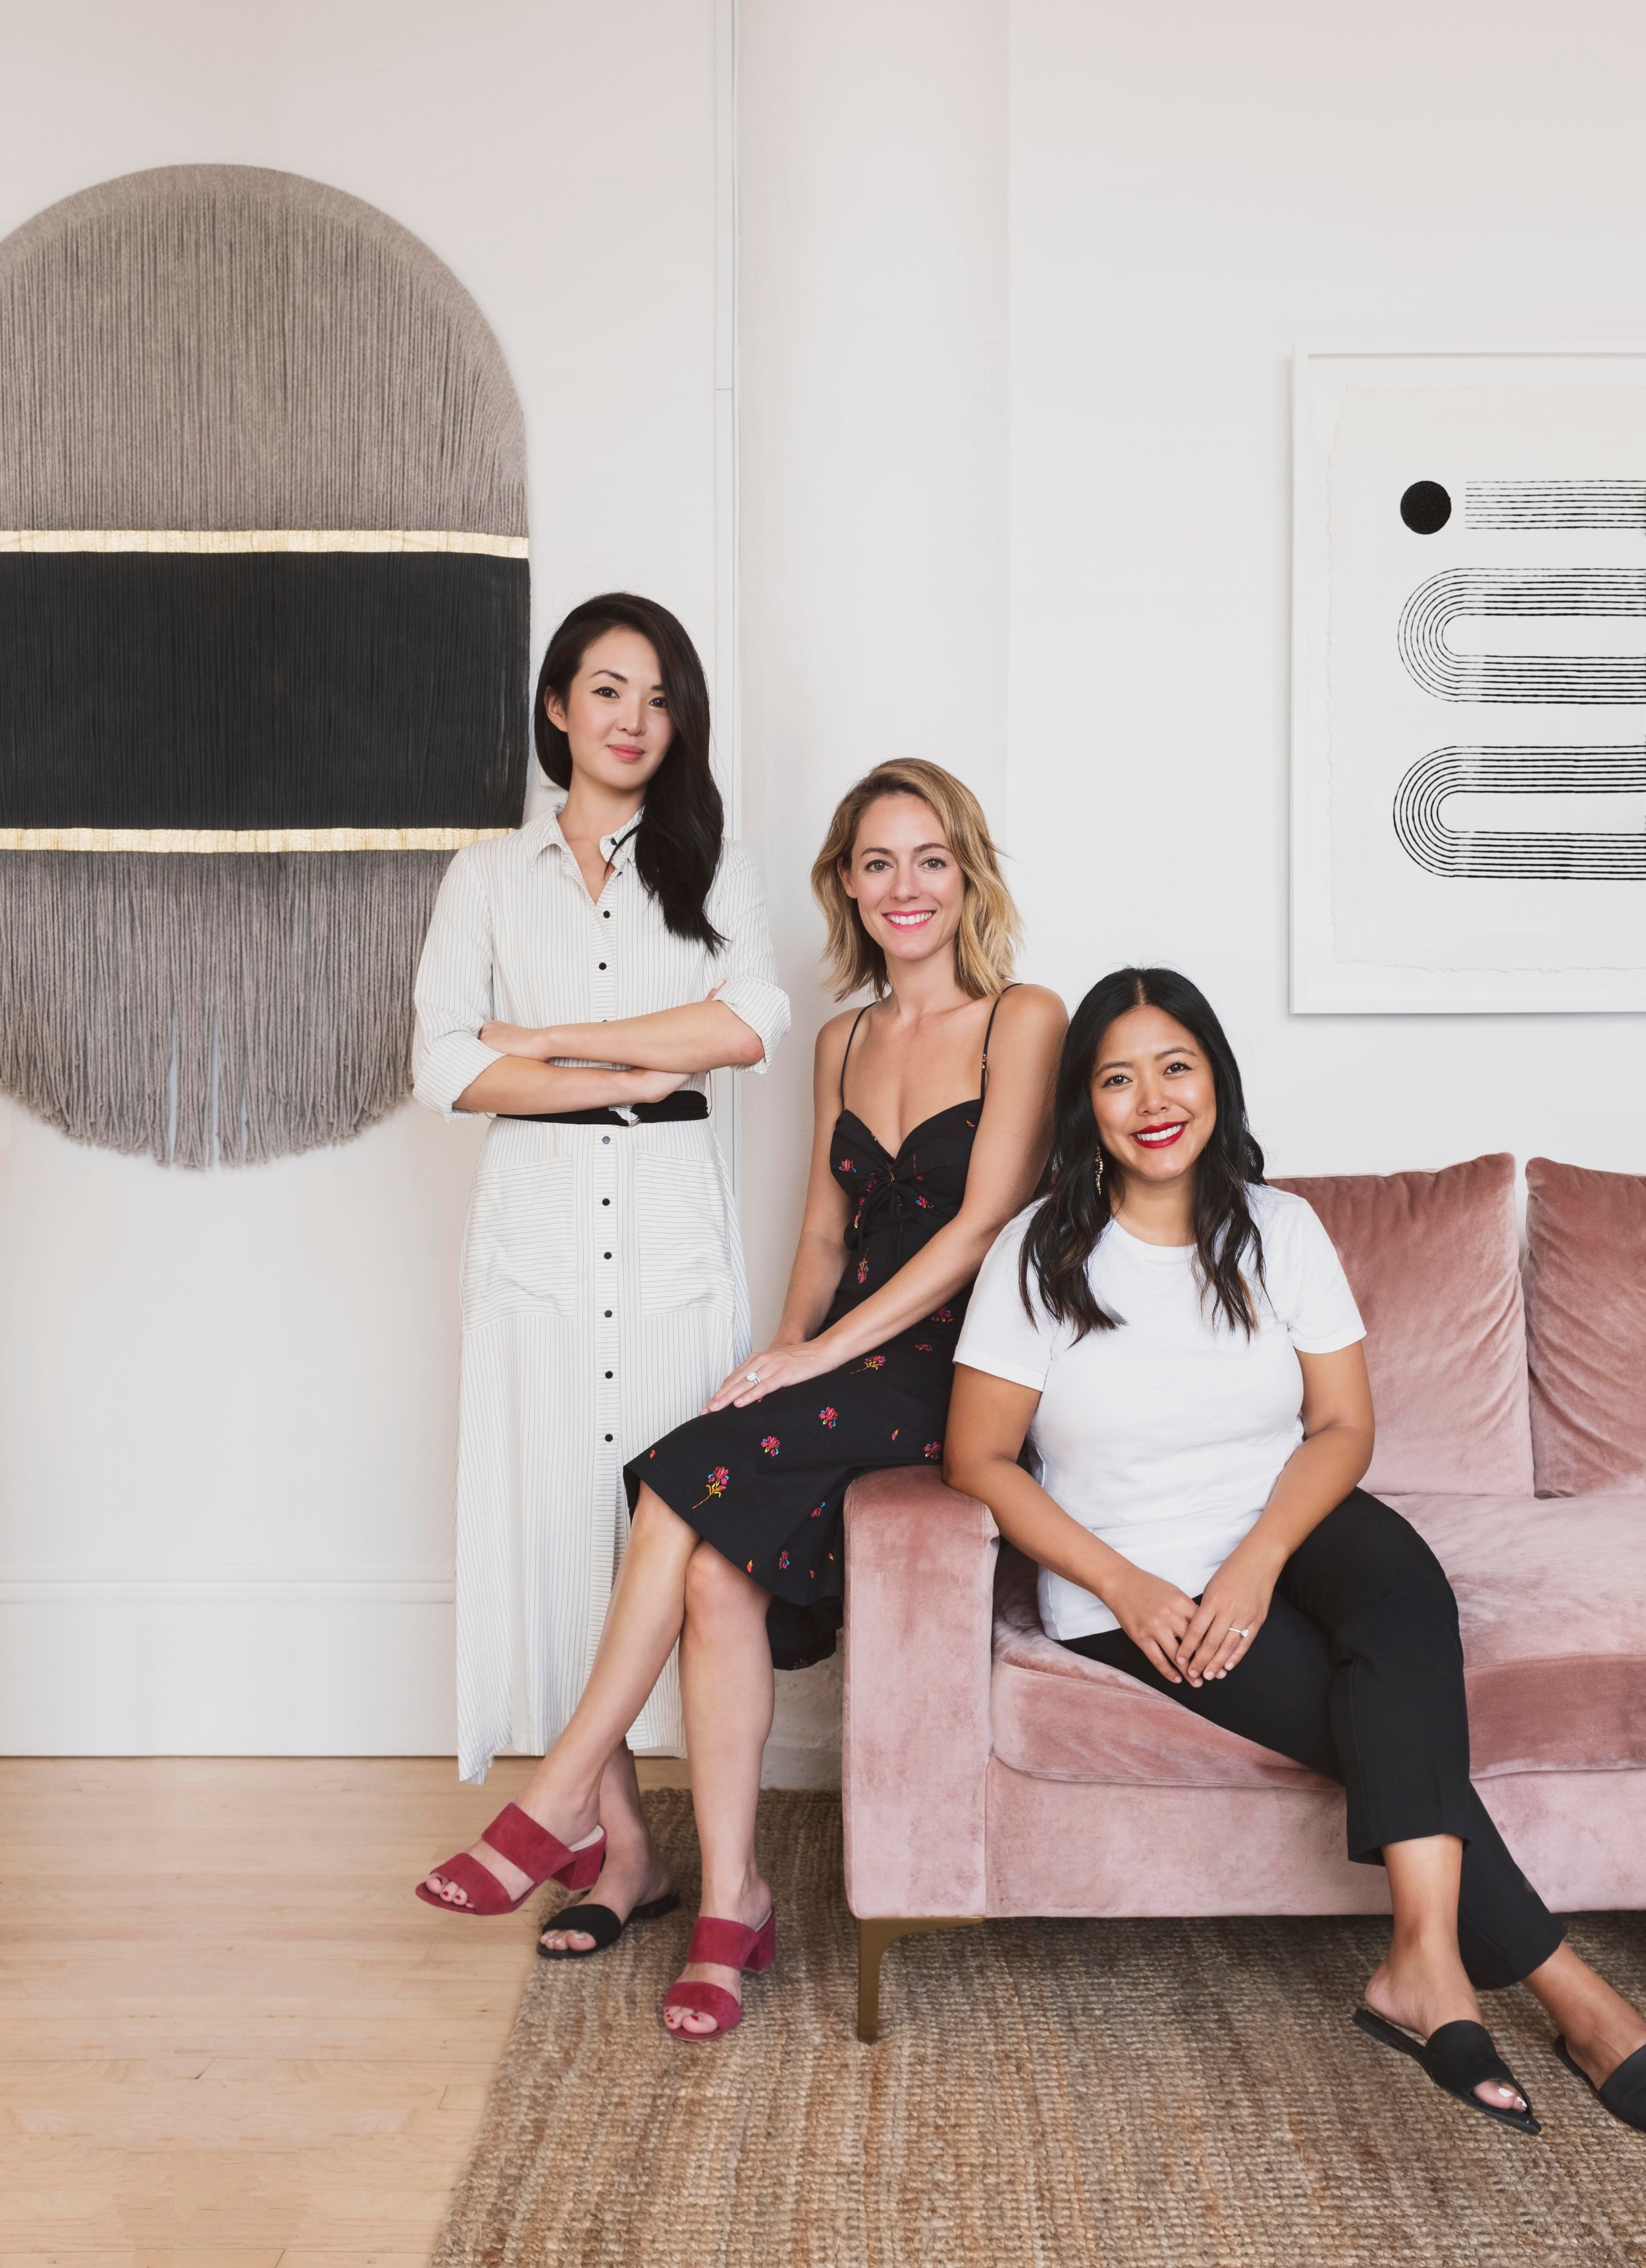 (Foundation PR founders from left to right: Jane Lim, Kelly Fobar Davis, Jenny Lin; Photography by Seth Caplan, photo provided by DATE Interiors.)